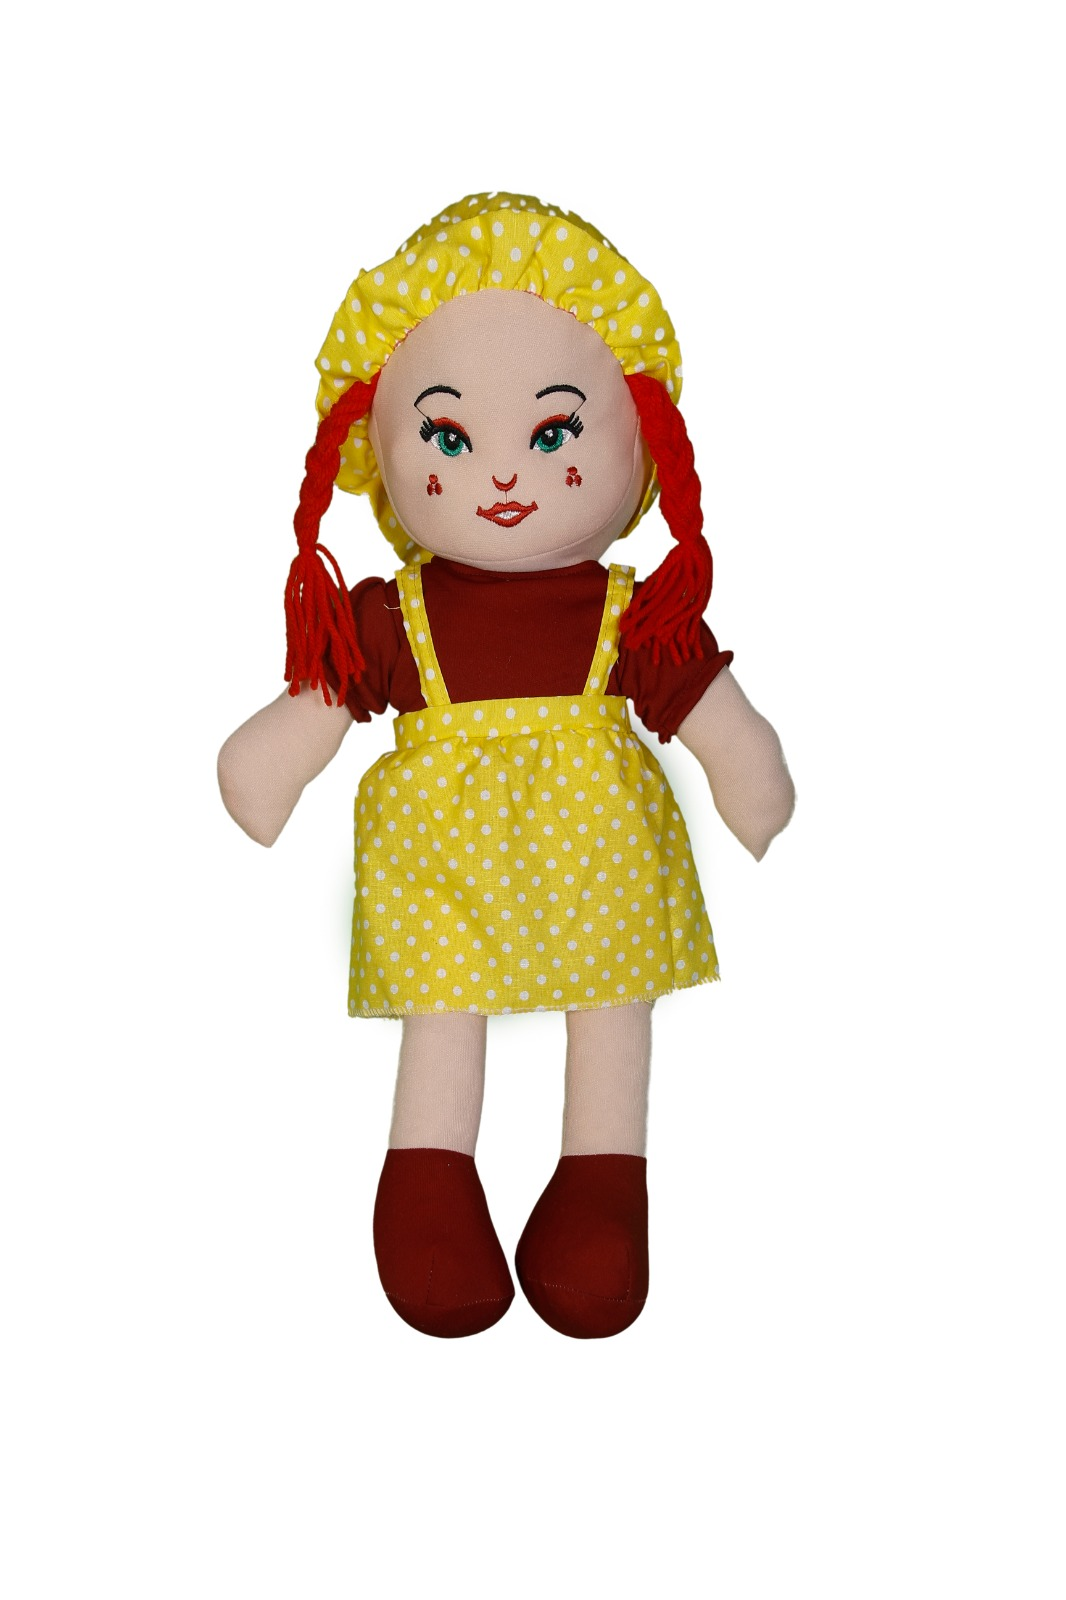 YELLOW-RED BABY 000112